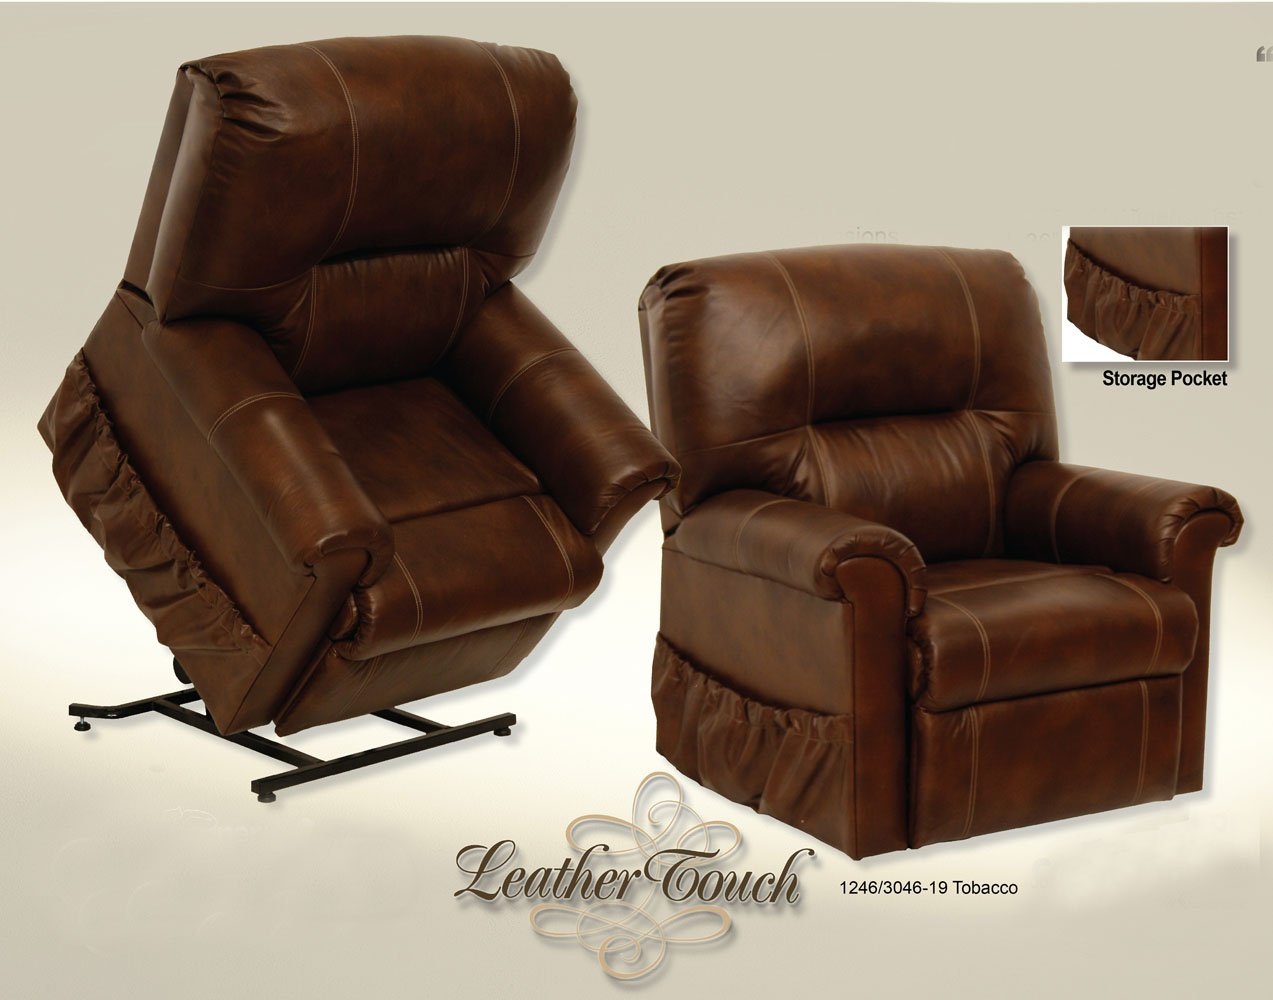 Our Best Leather Recliner Recommendation